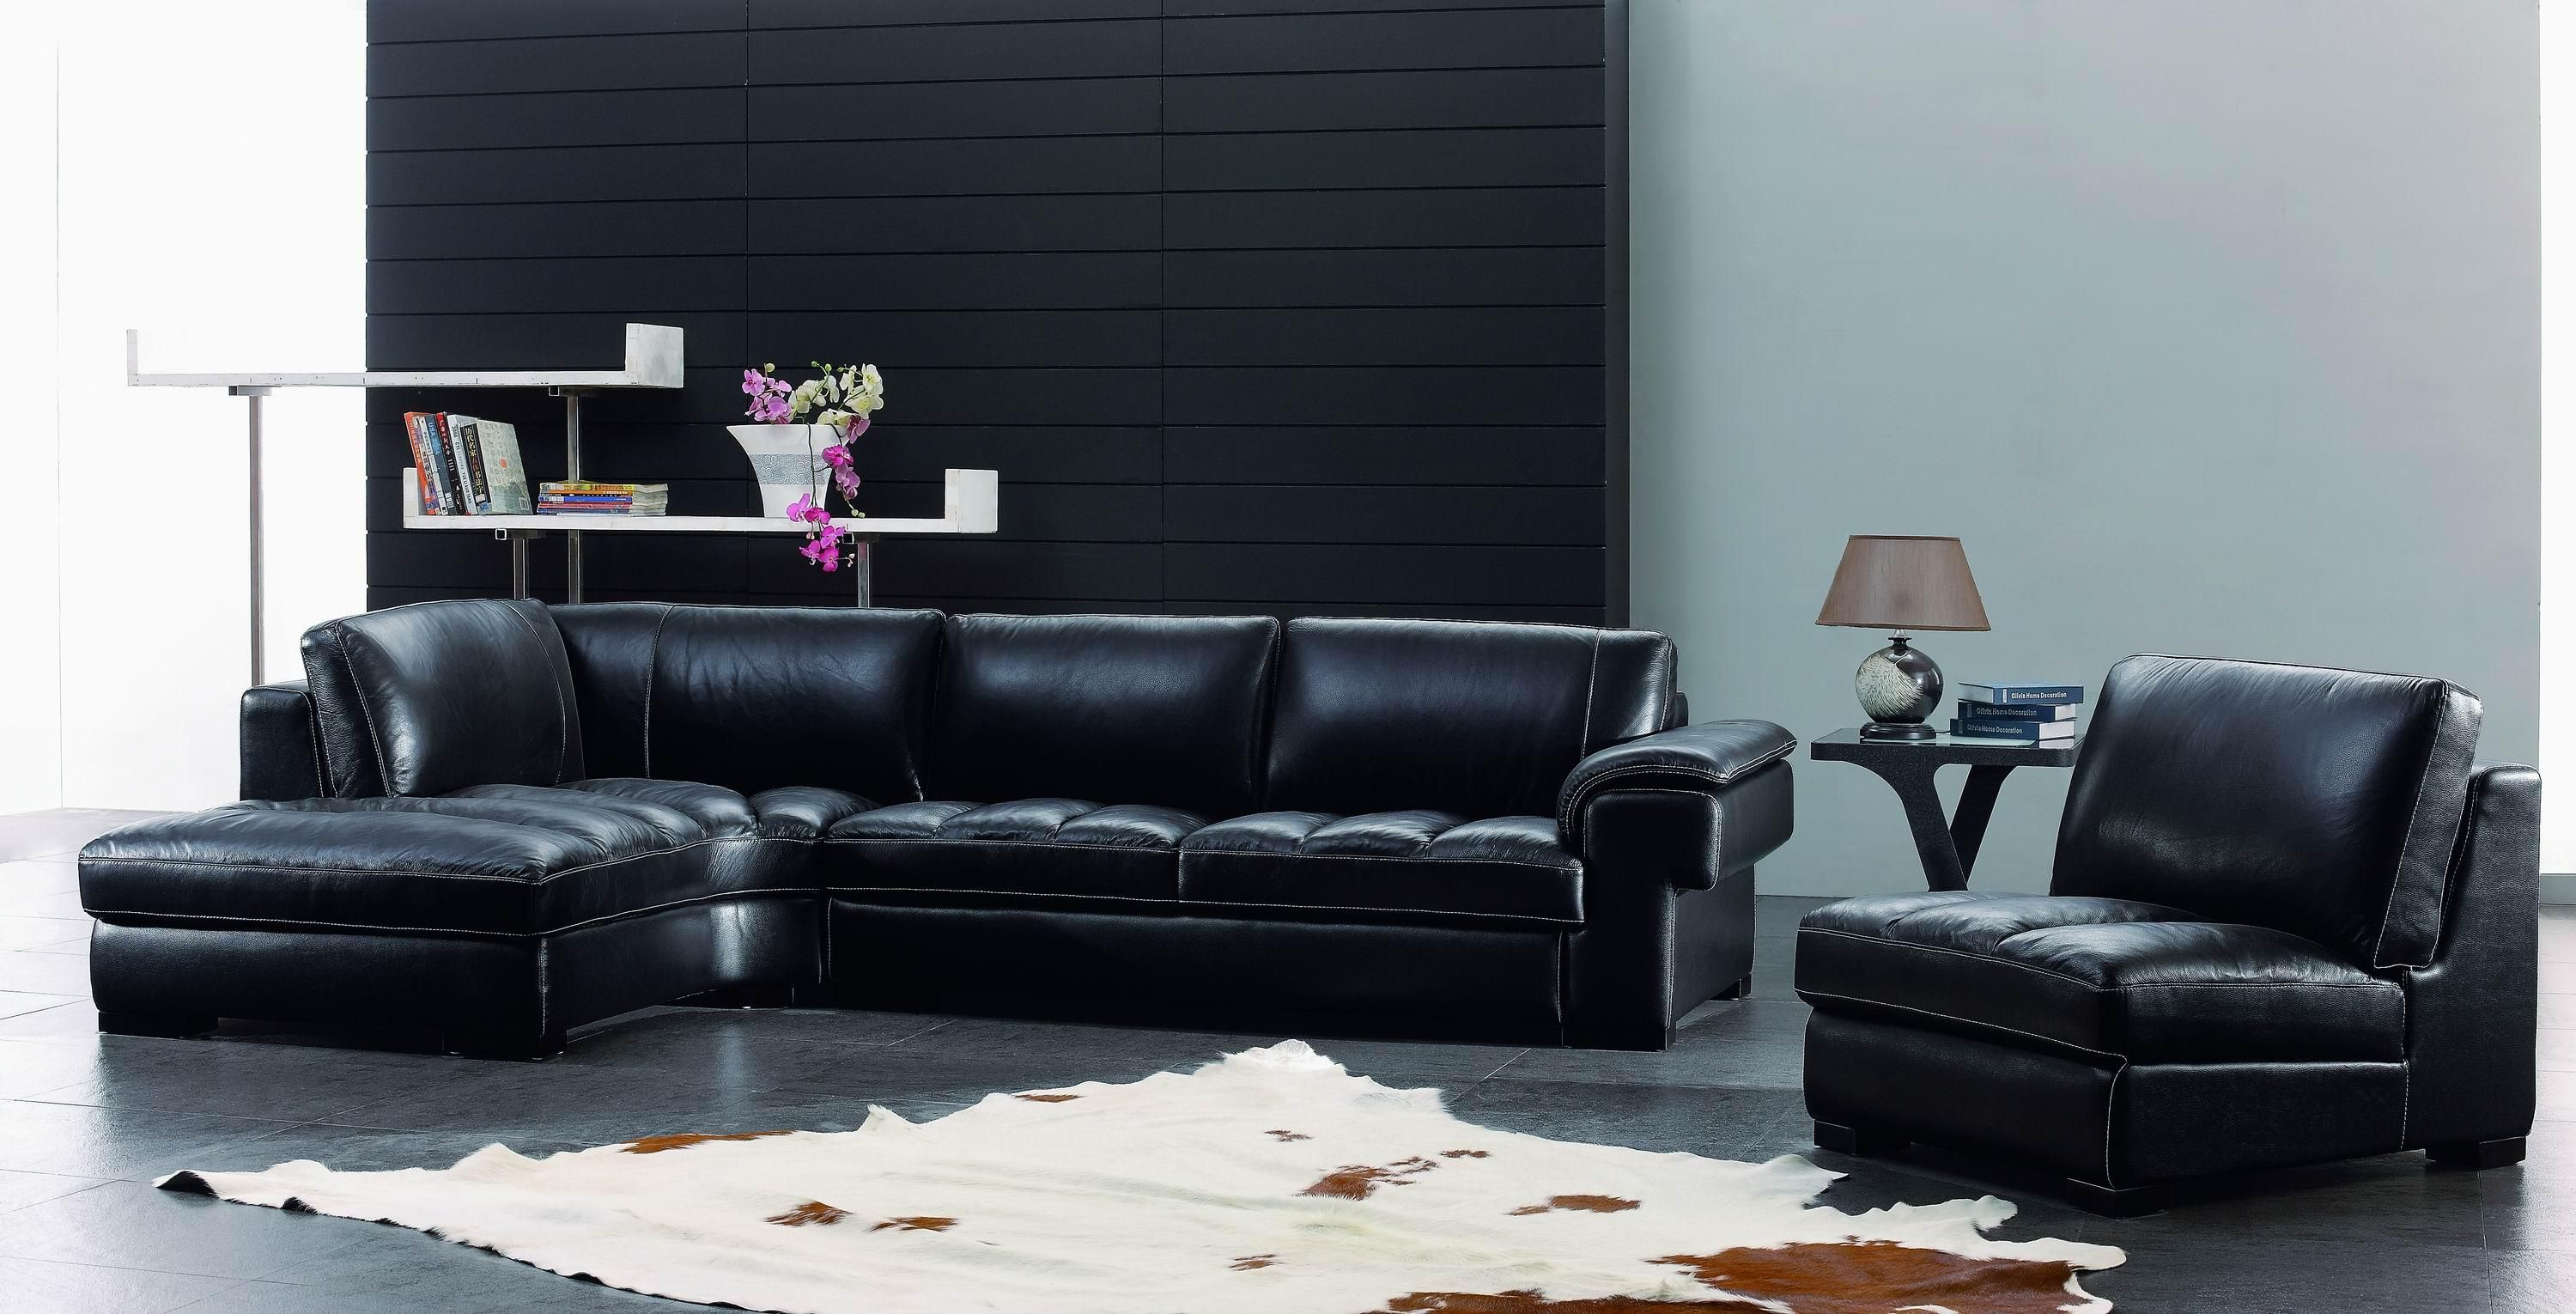 Living Room Design With Black Leather Sofa Captivating L Shaped Black Leather Couch Connectedblack Wall Theme And Decorating Inspiration